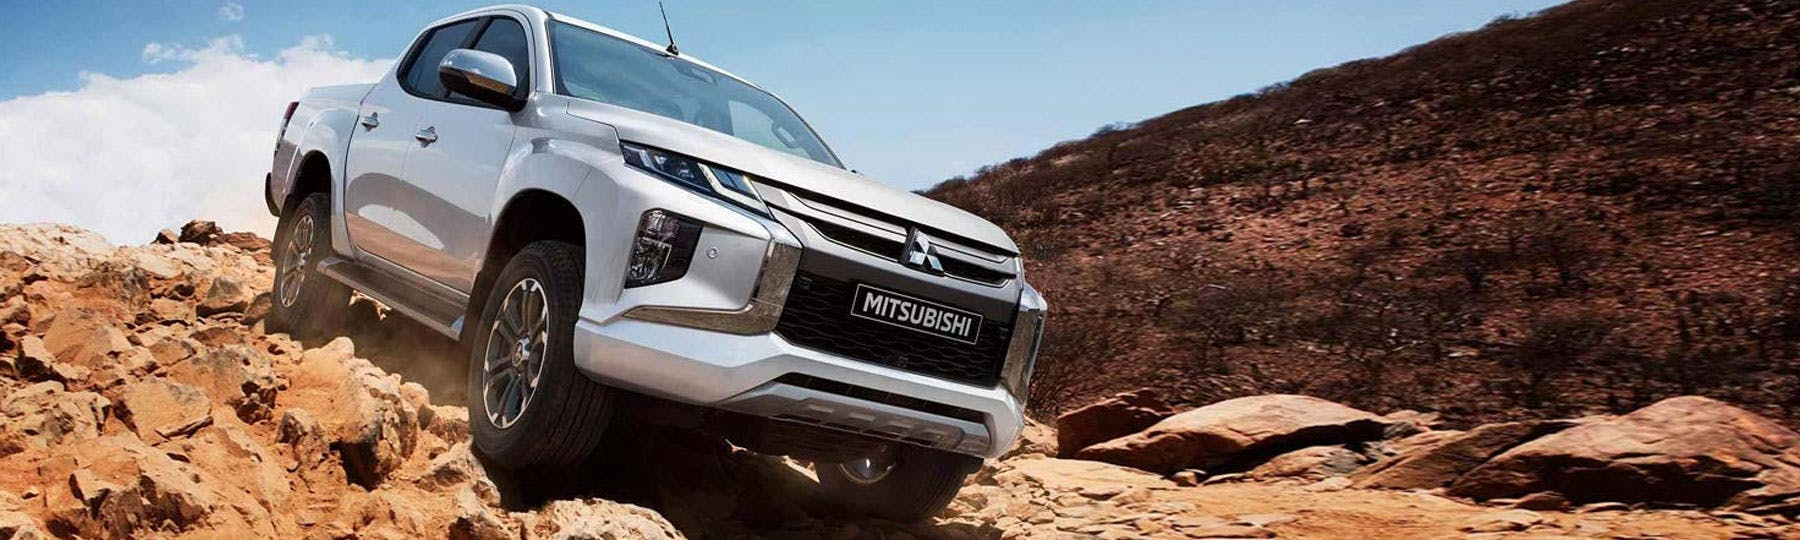 All-New Mitsubishi L200